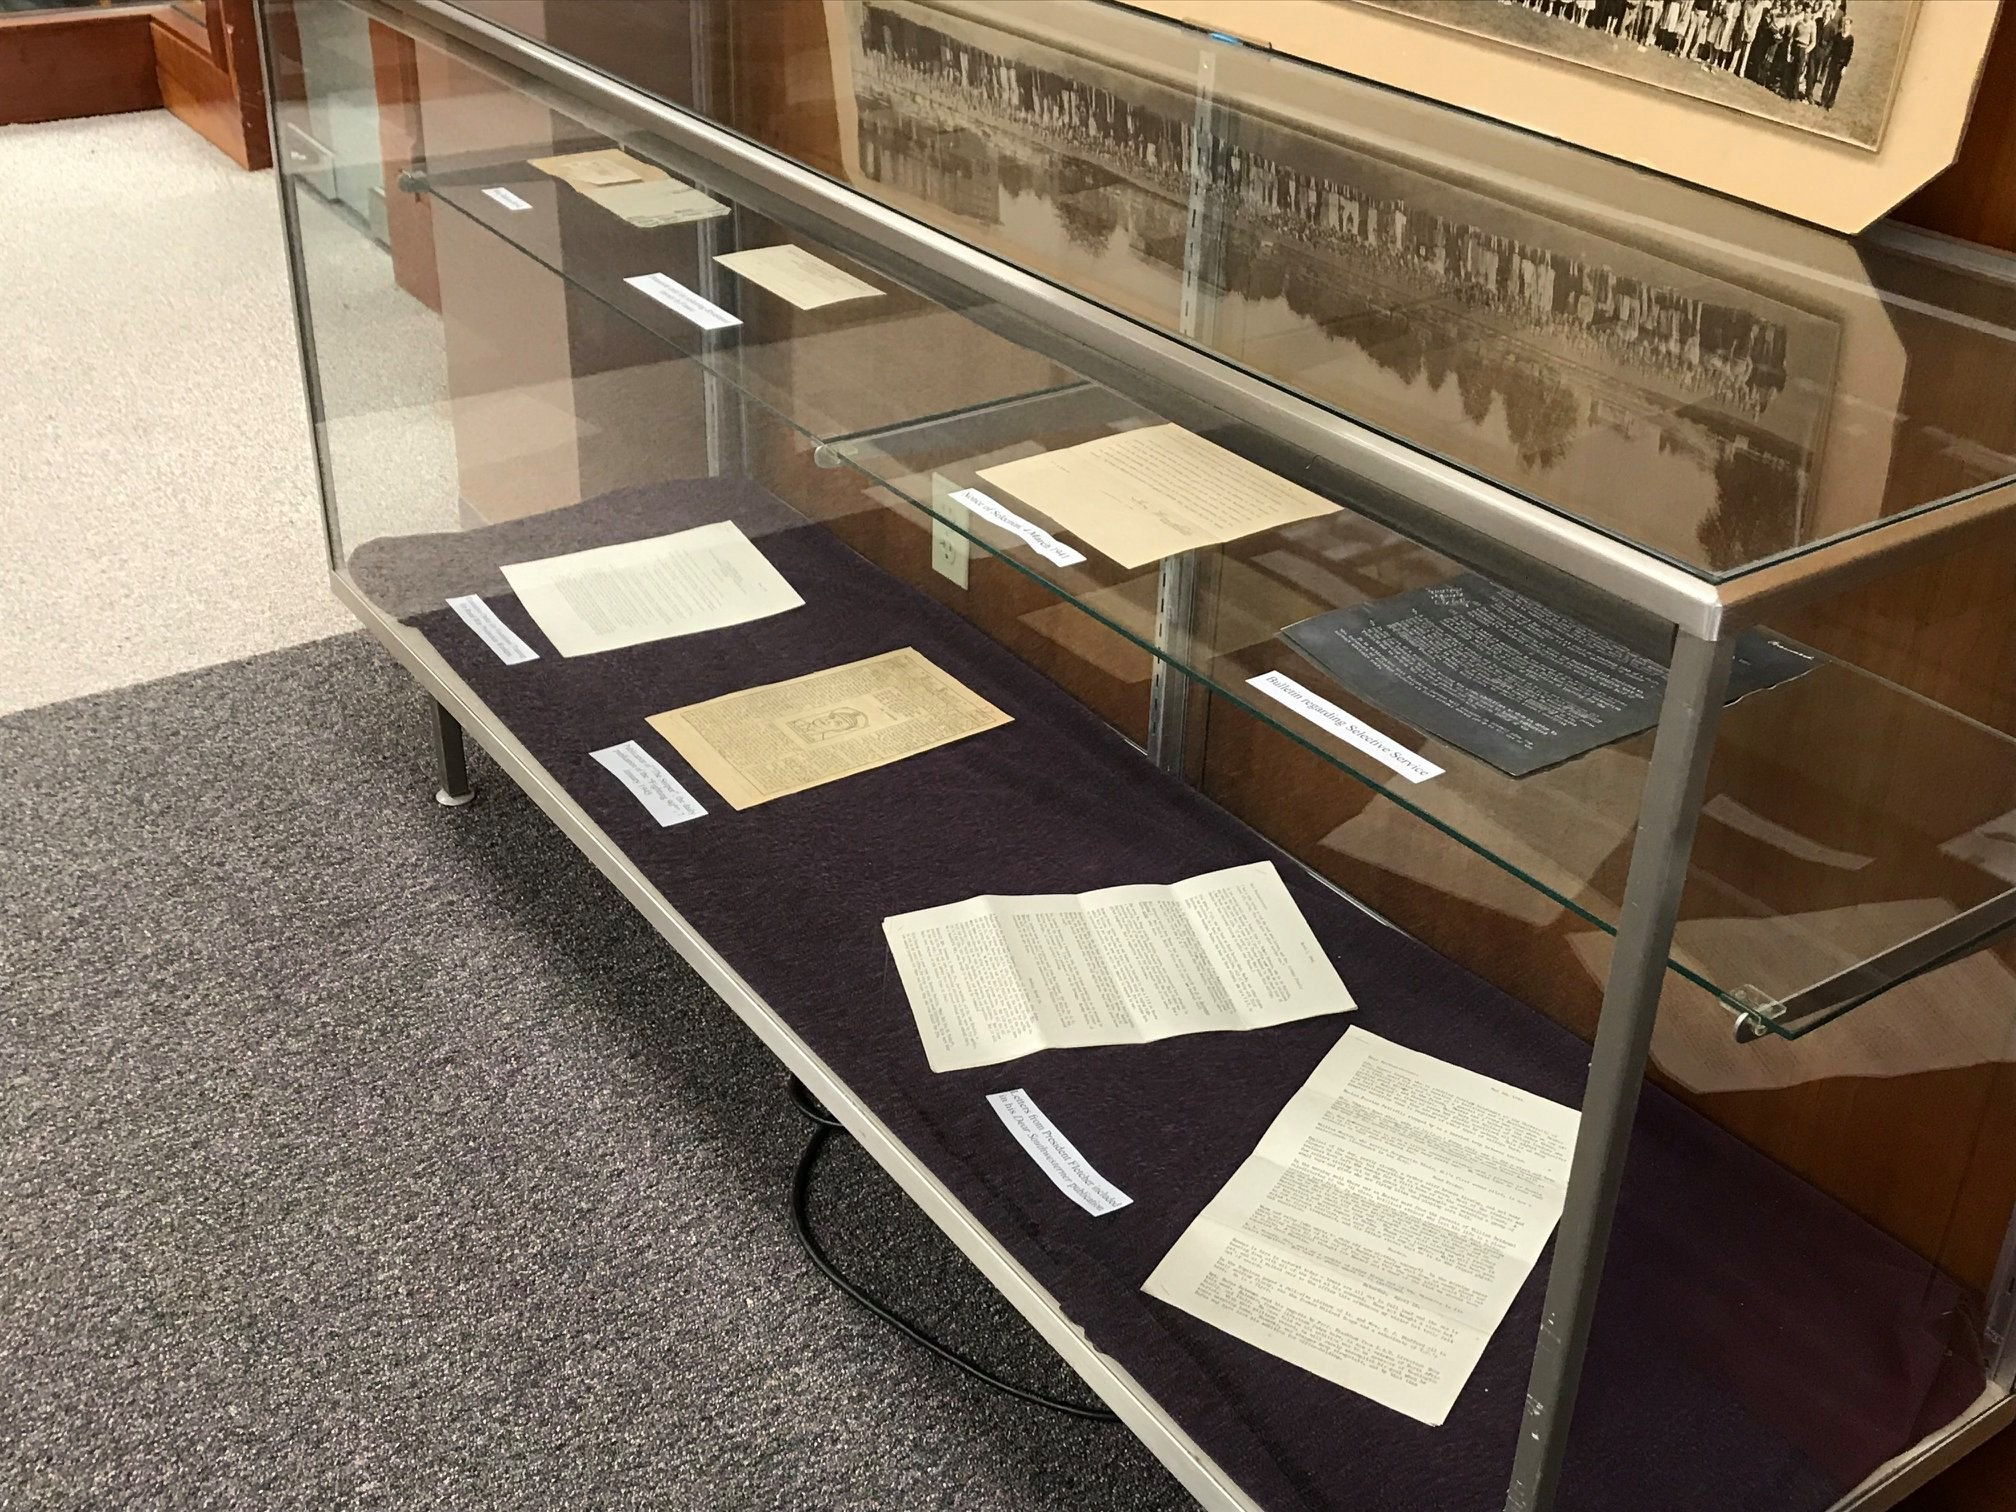 University Archives Display Case